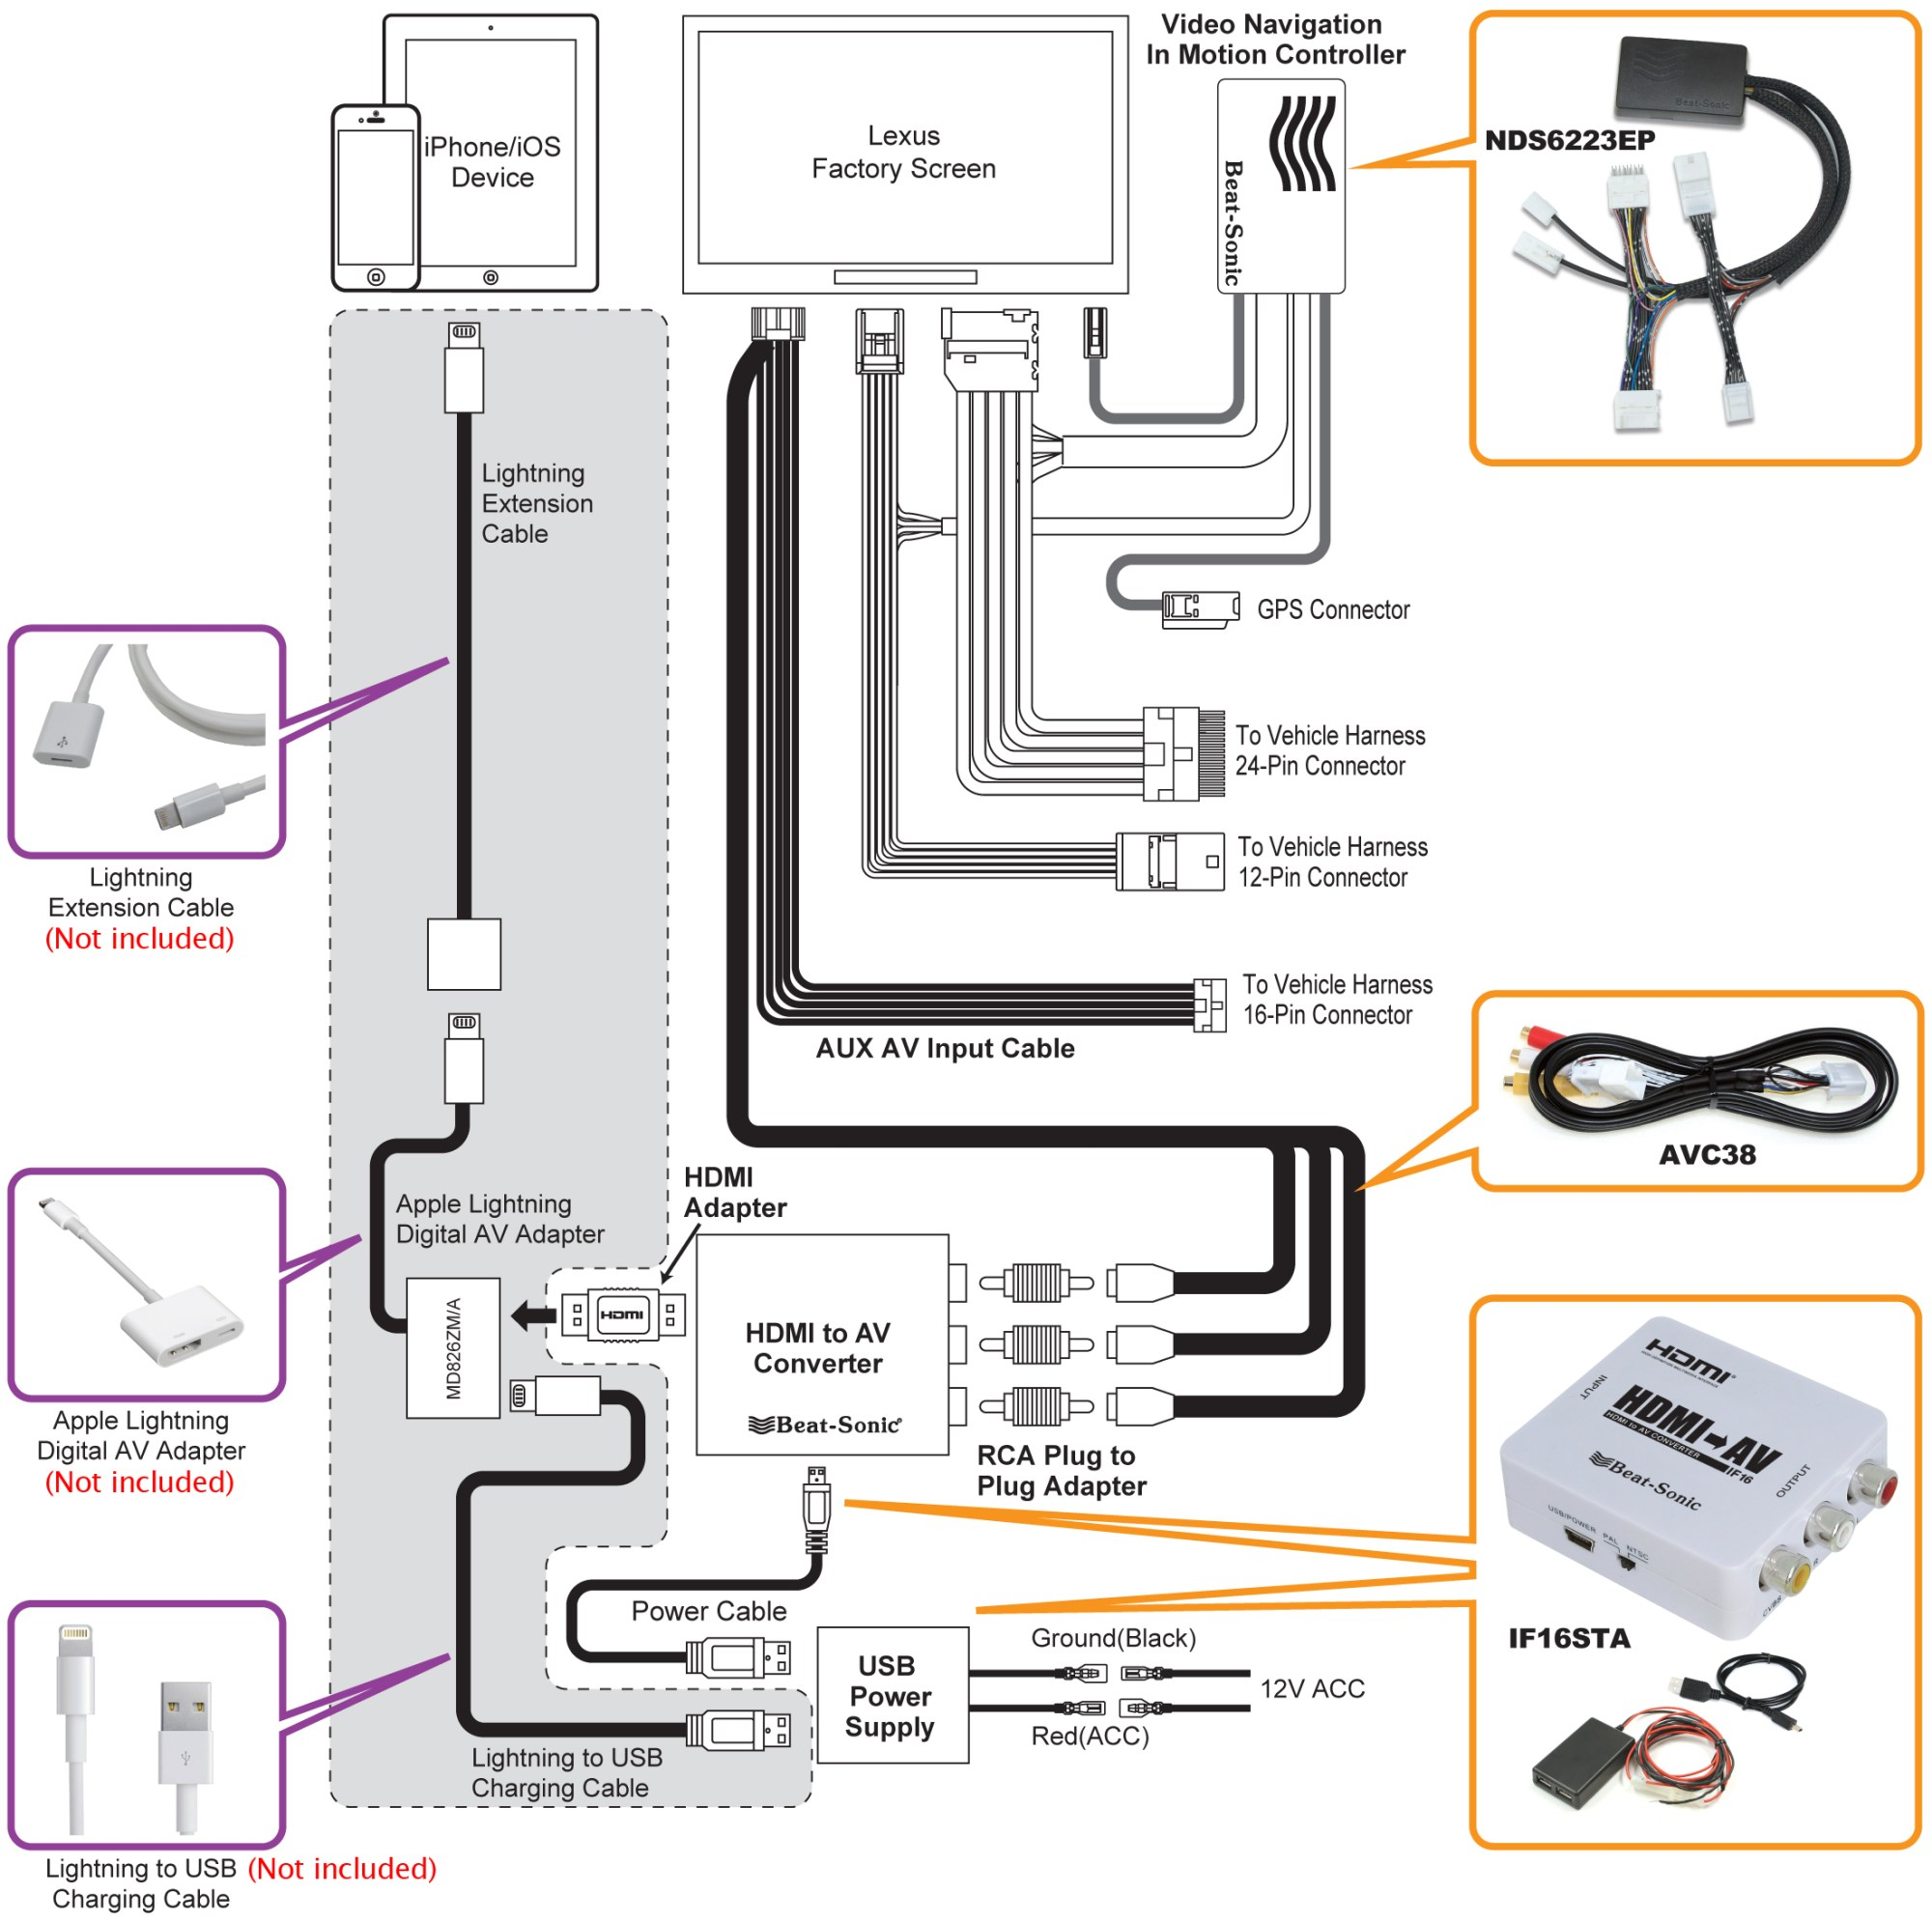 hight resolution of if 04ep the iphone mirroring kit for lexus models with factory wiring diagram 2006 lexus rx 400h 2004 ls 430 lexus mark levinson wire